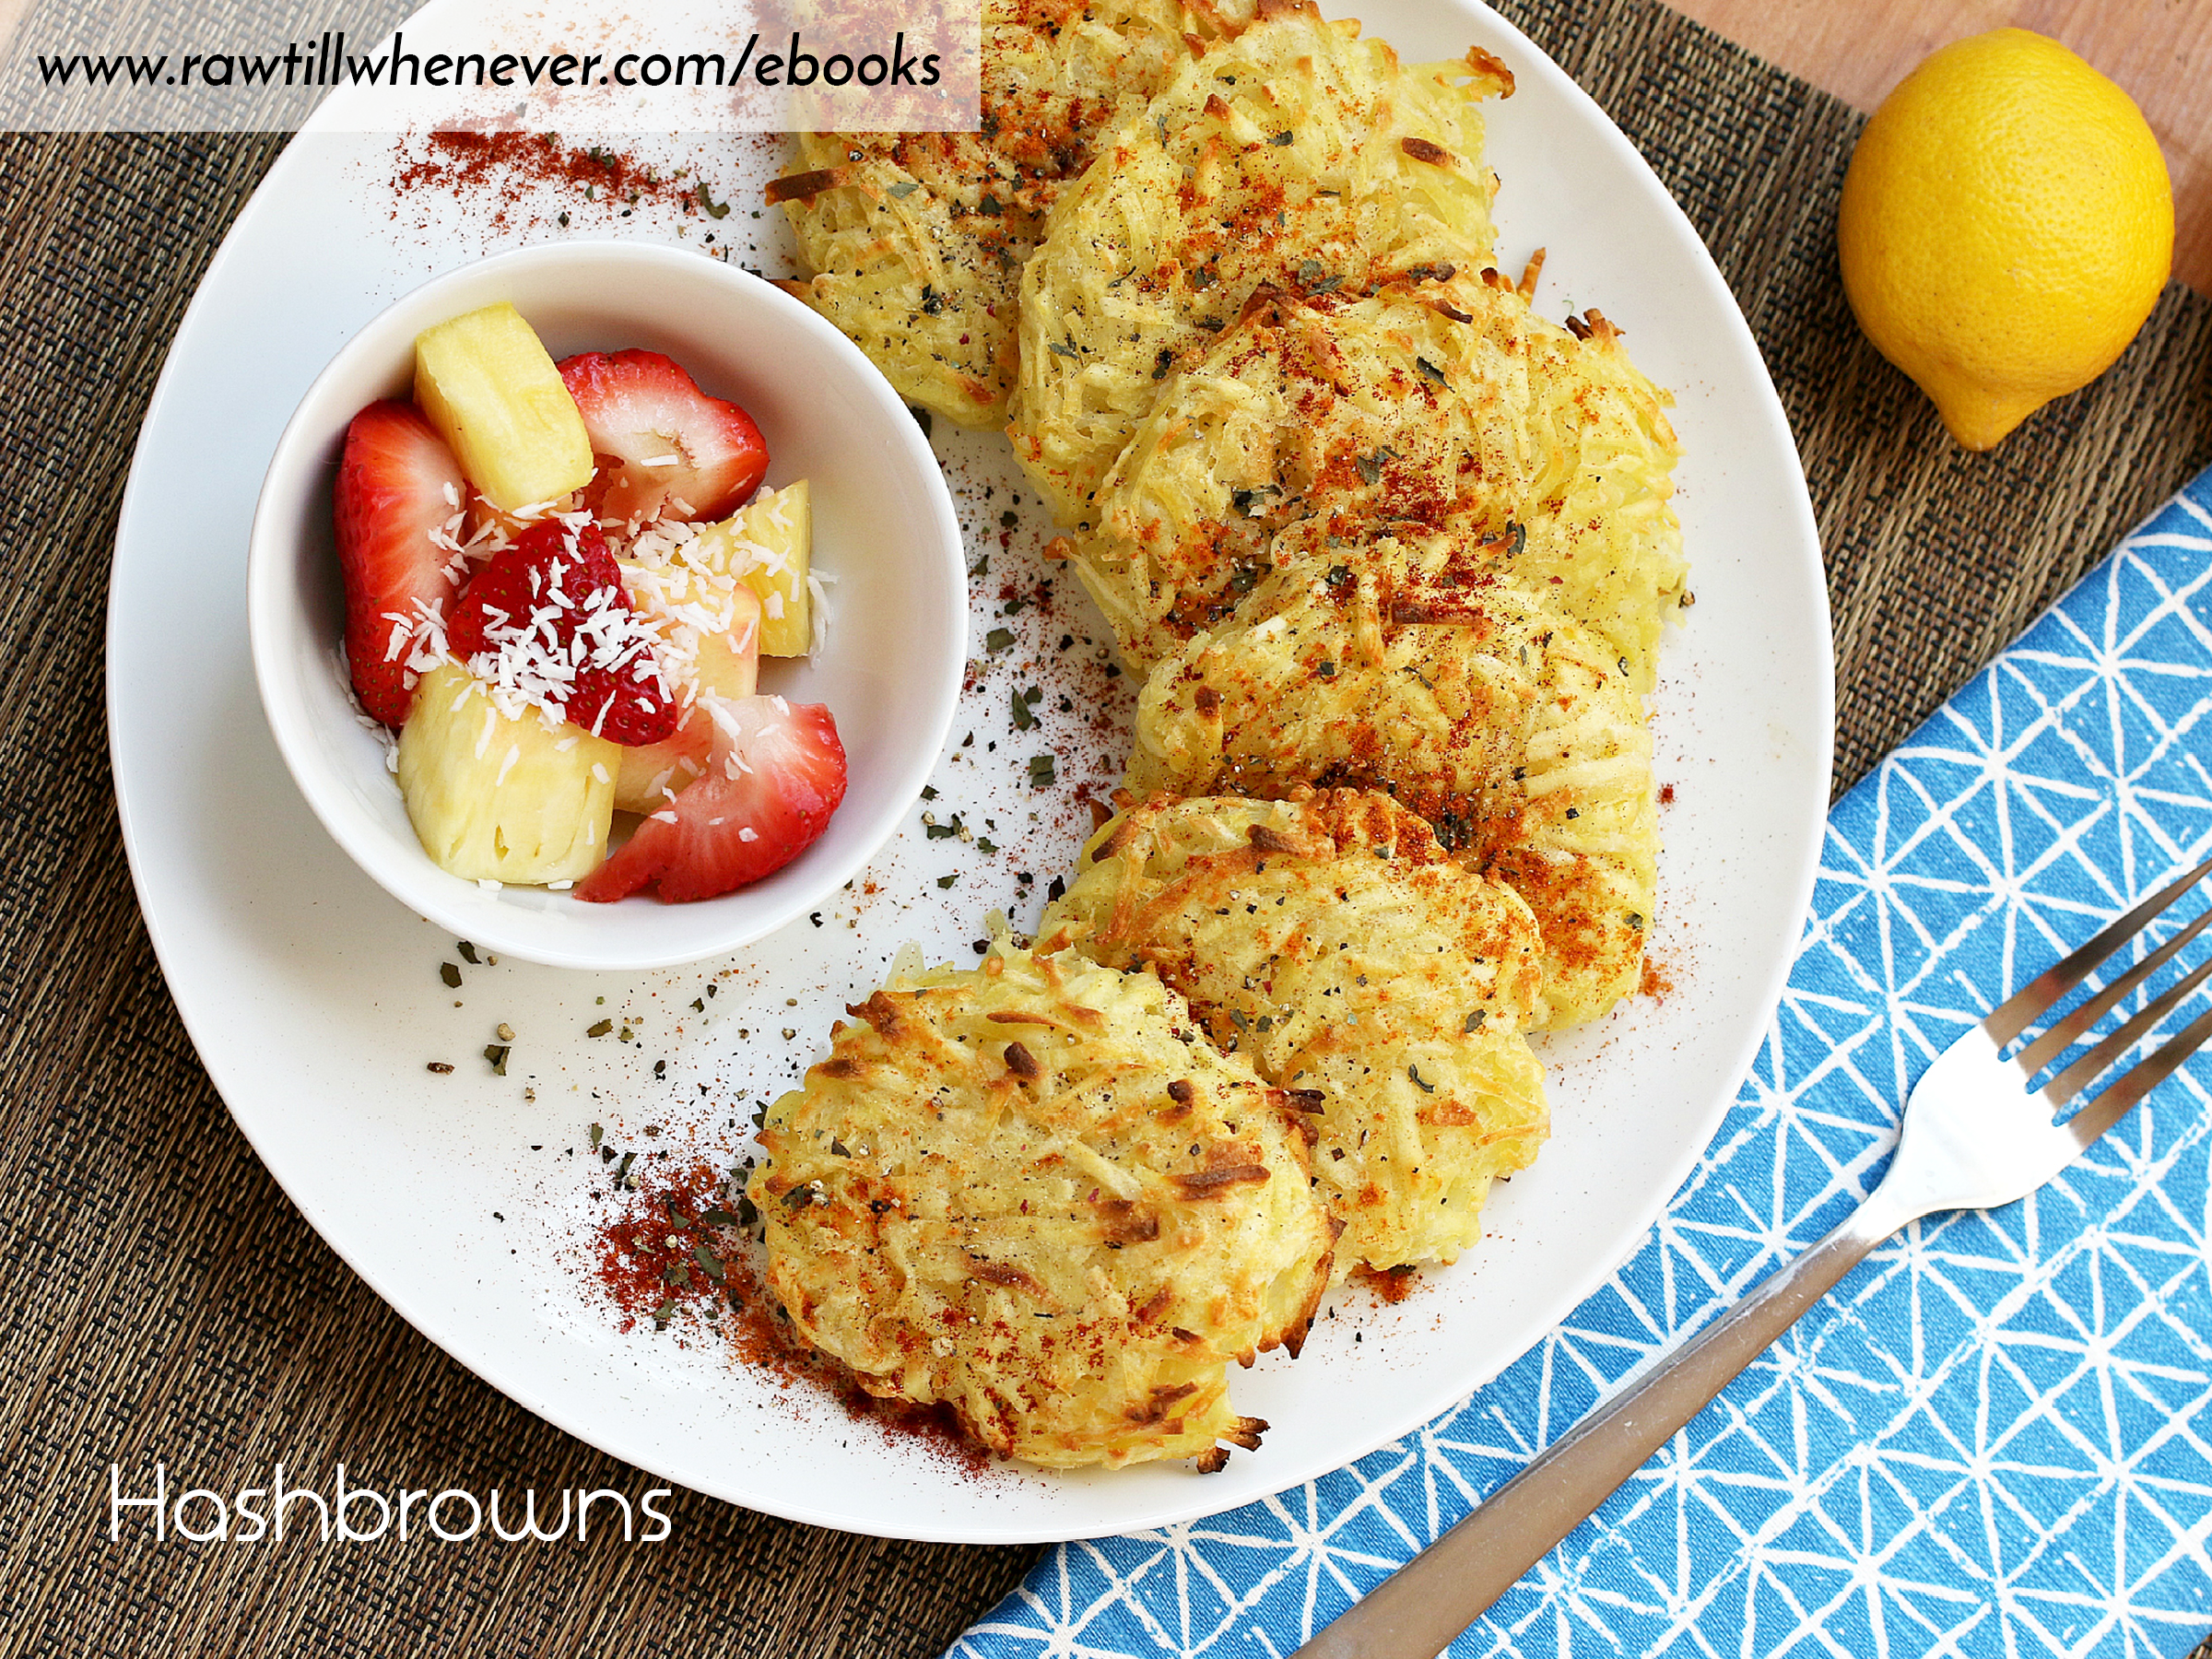 Hashbrown recipe featured from my best selling vegan recipe book hashbrown recipe featured from my best selling vegan recipe book fullycooked potato diethealthy forumfinder Choice Image